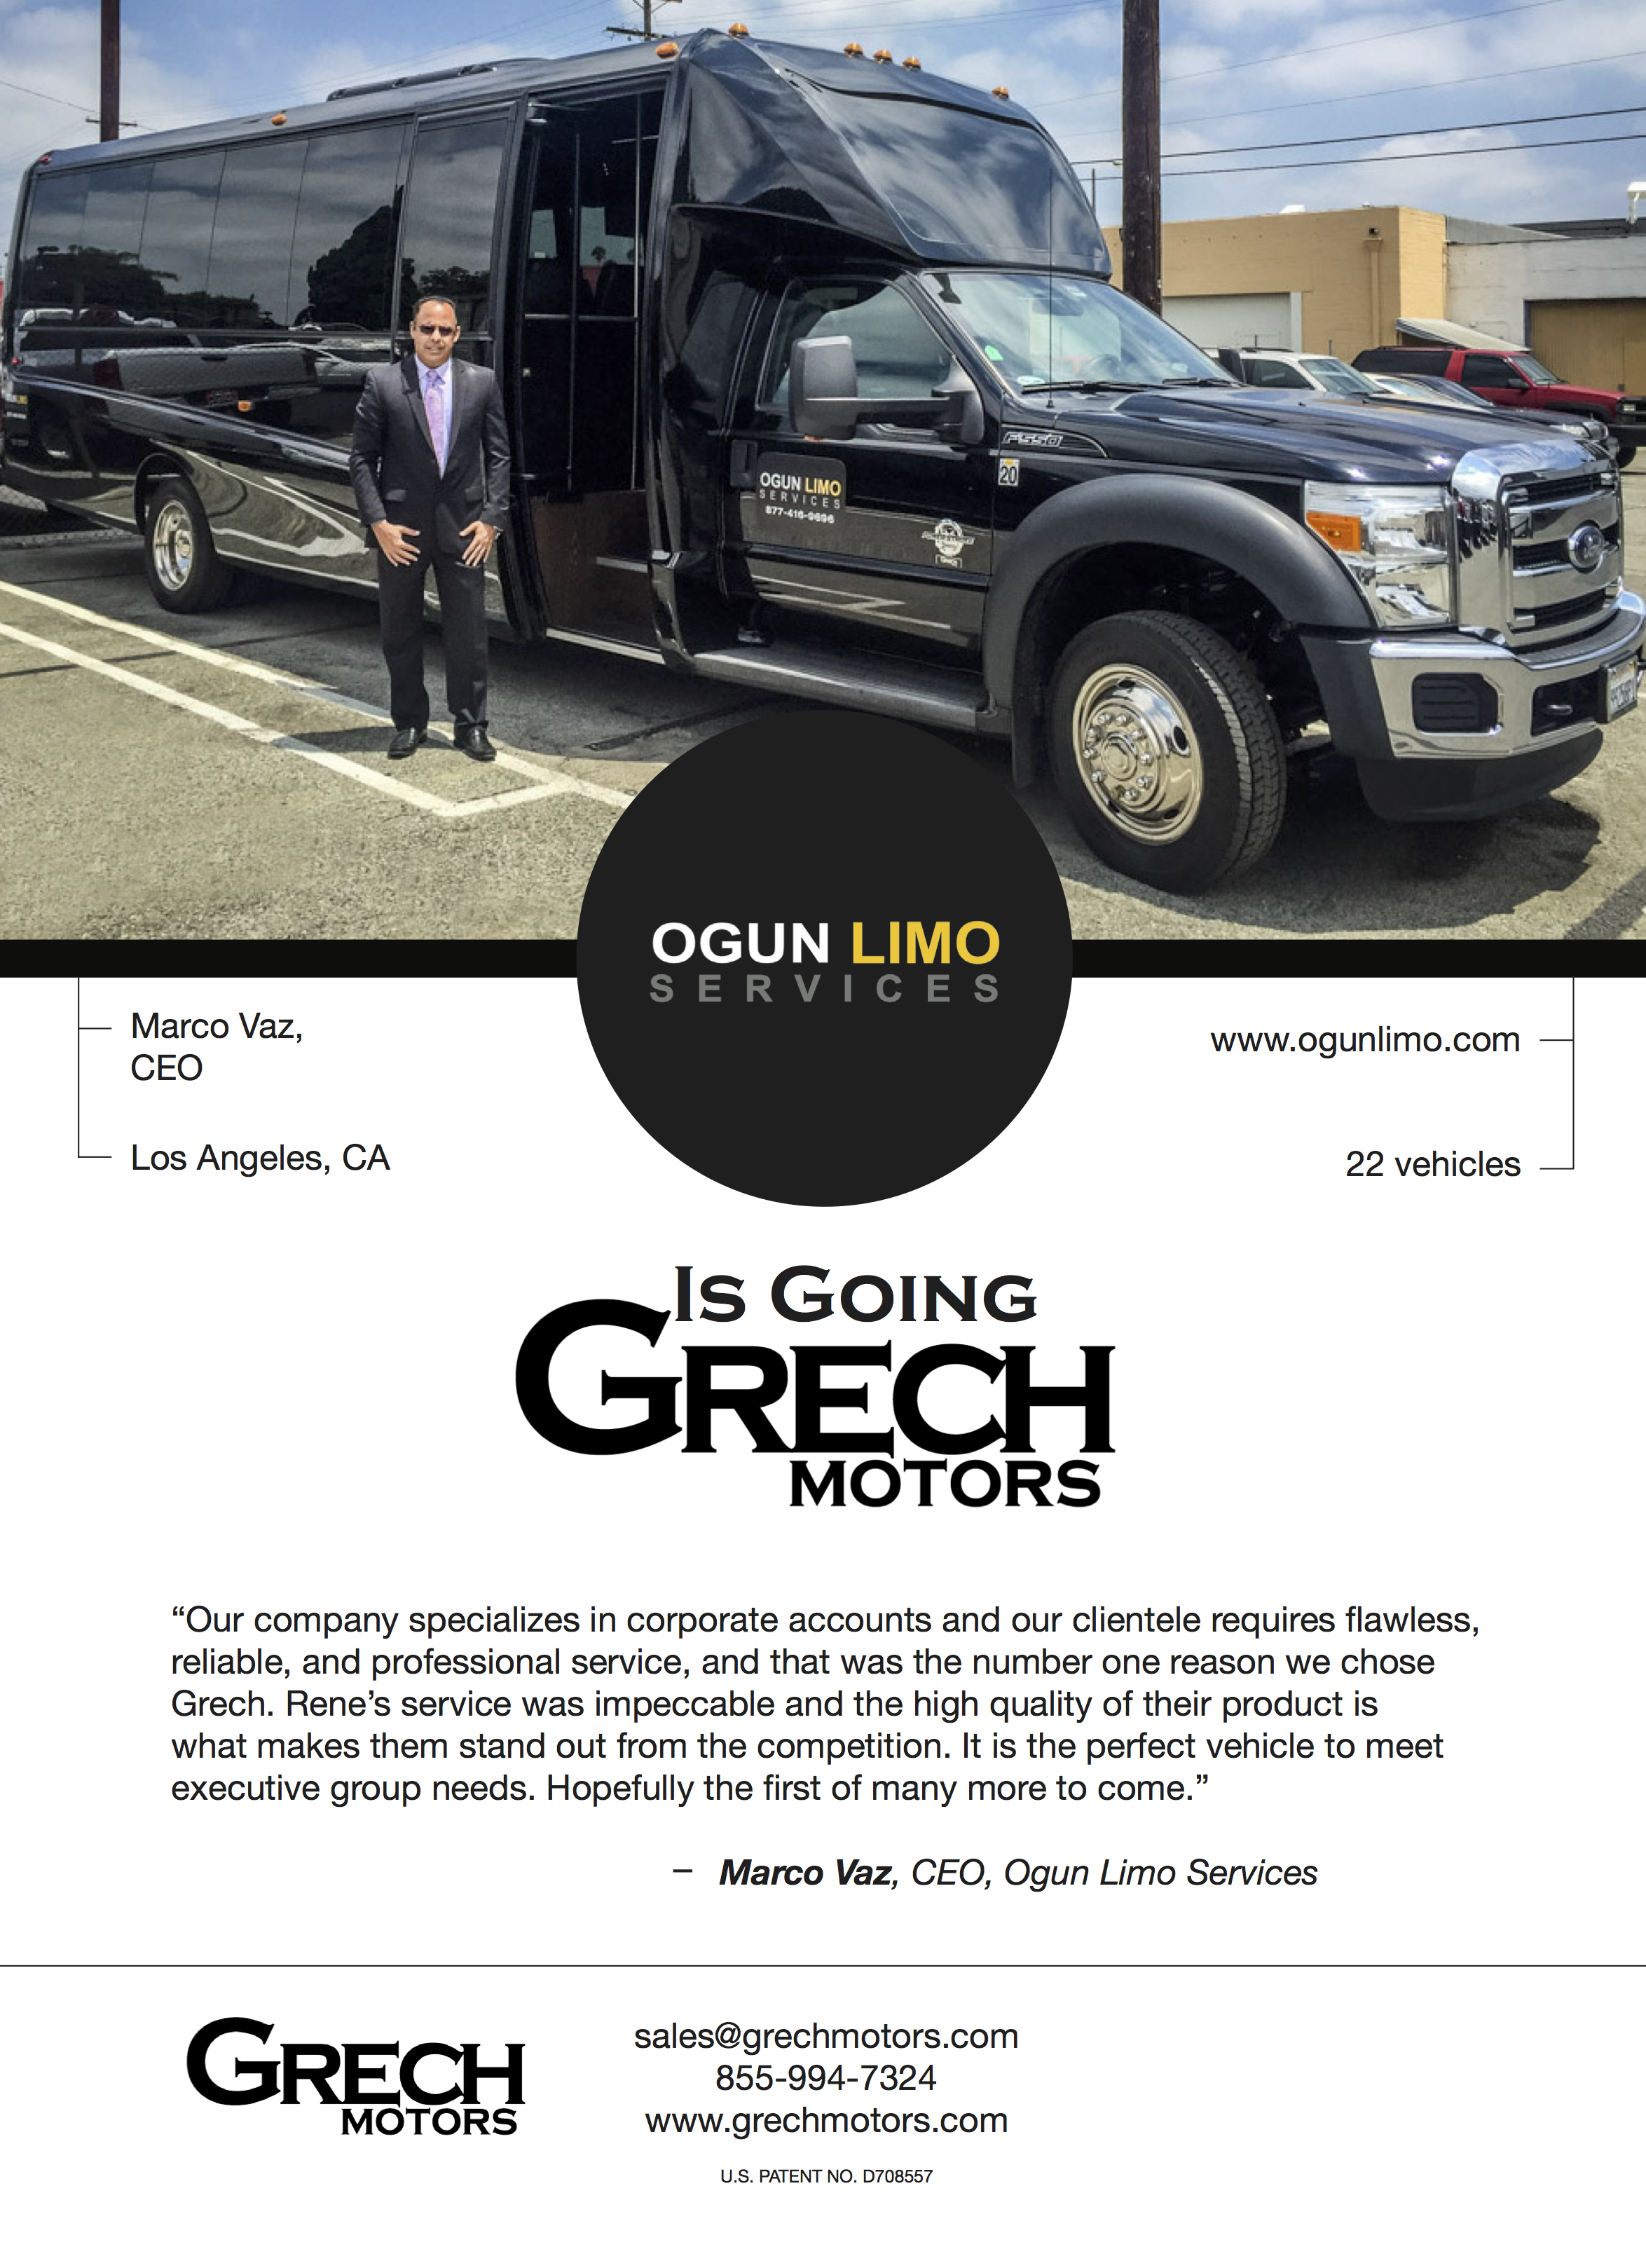 Ogun-Limo-Going-Grech-LCT copy.png